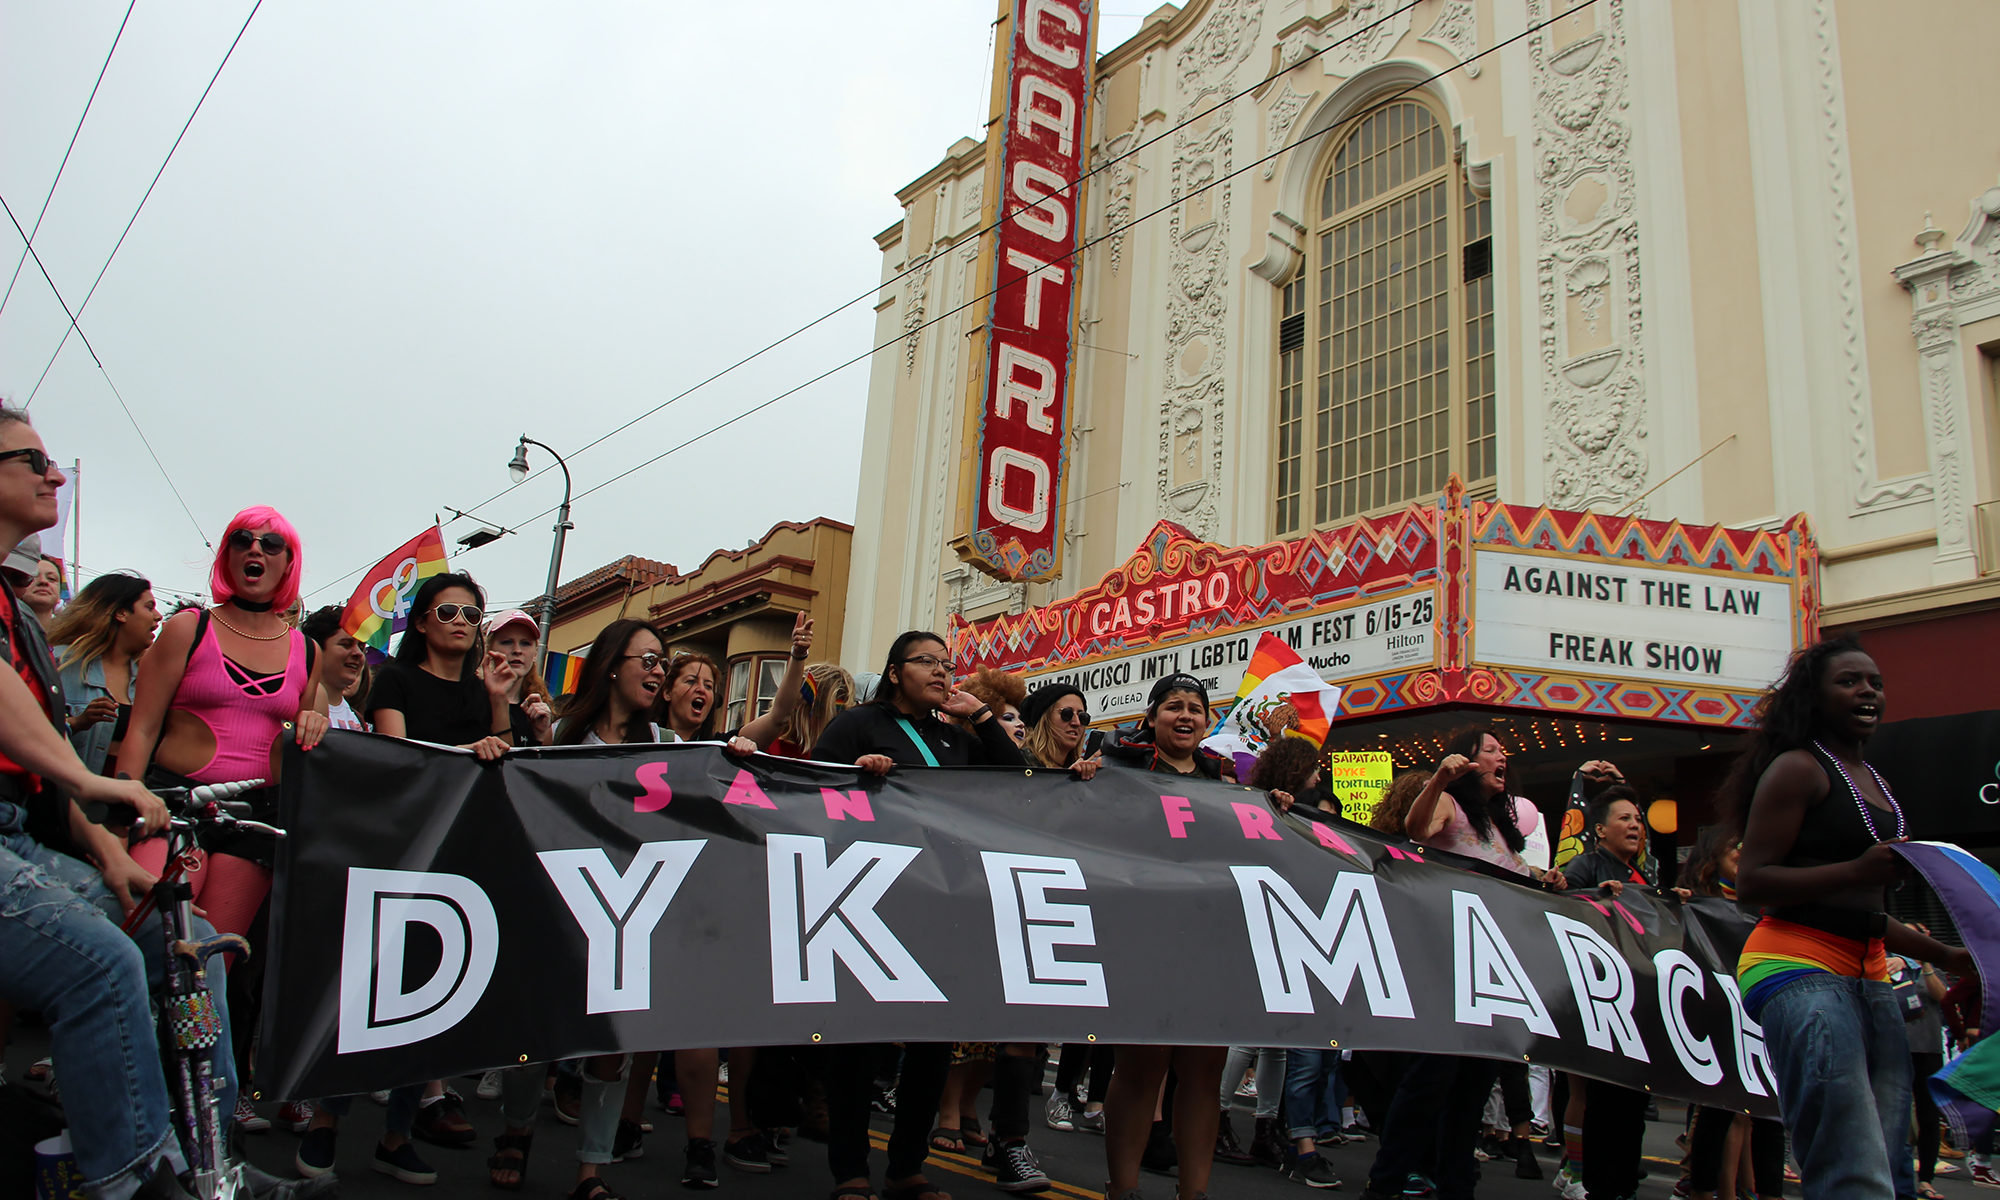 Dyke March makes its way down Castro Street